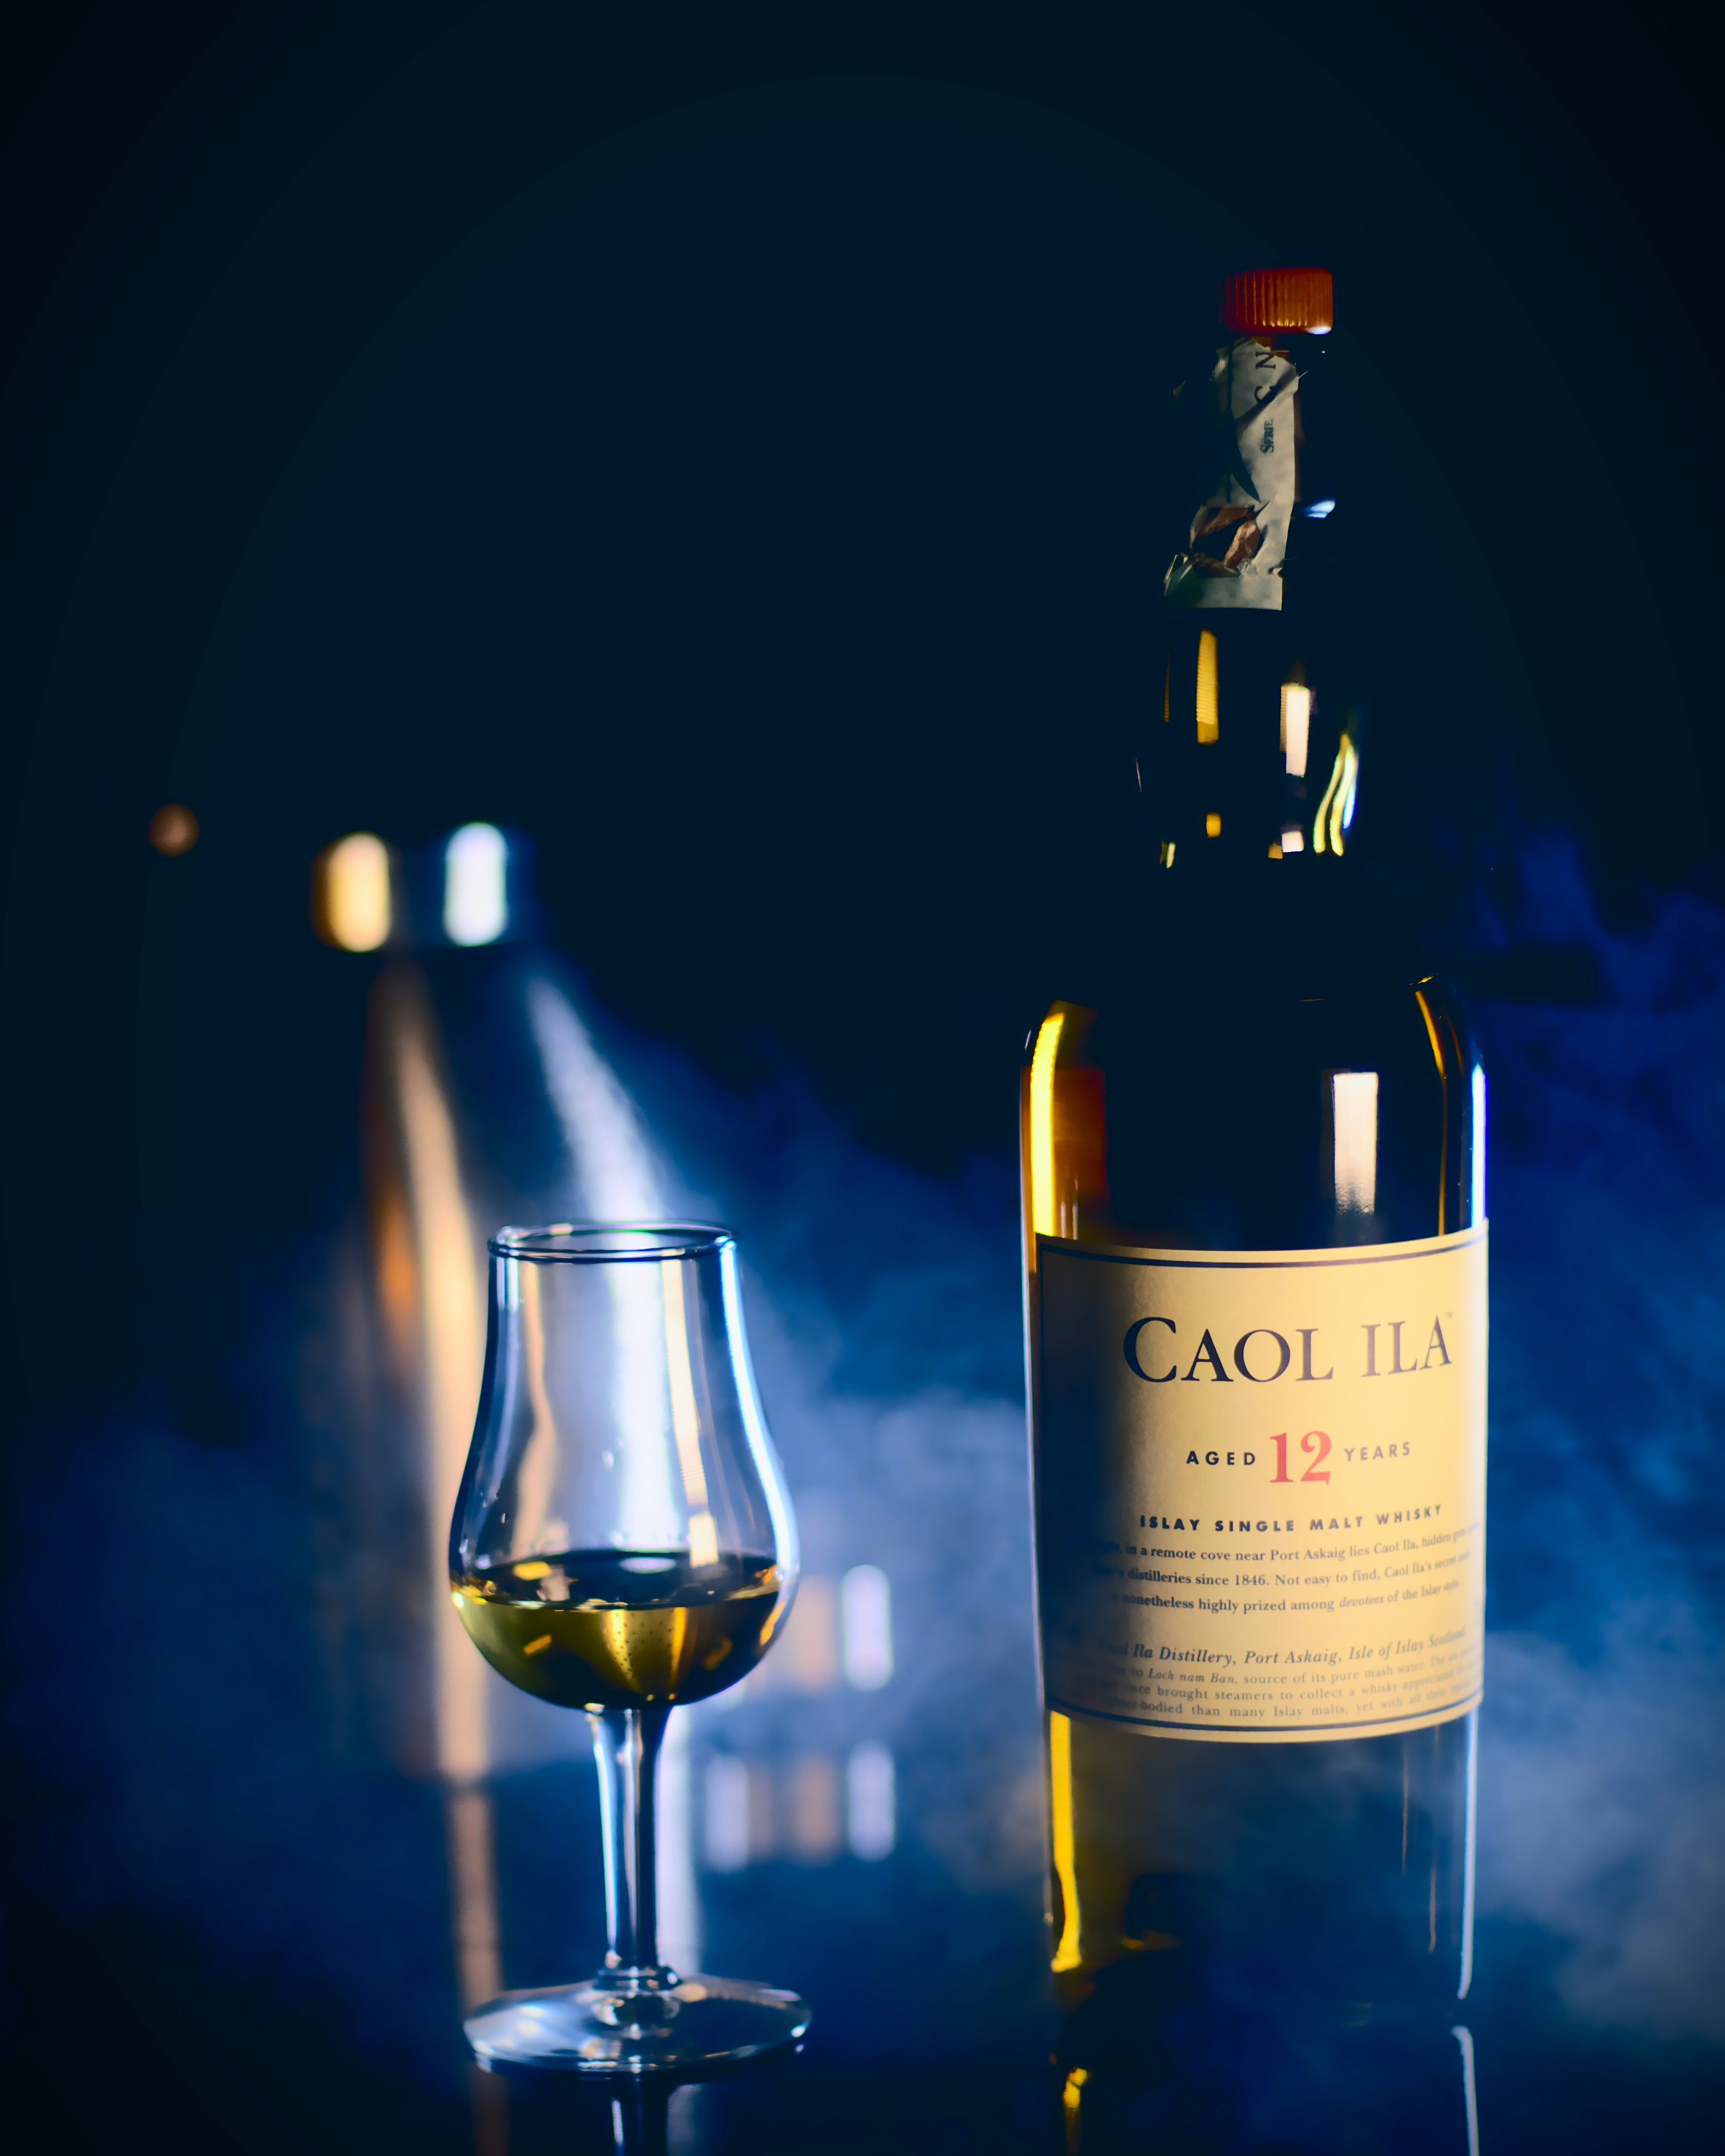 Caol Ila bottle near wine glass